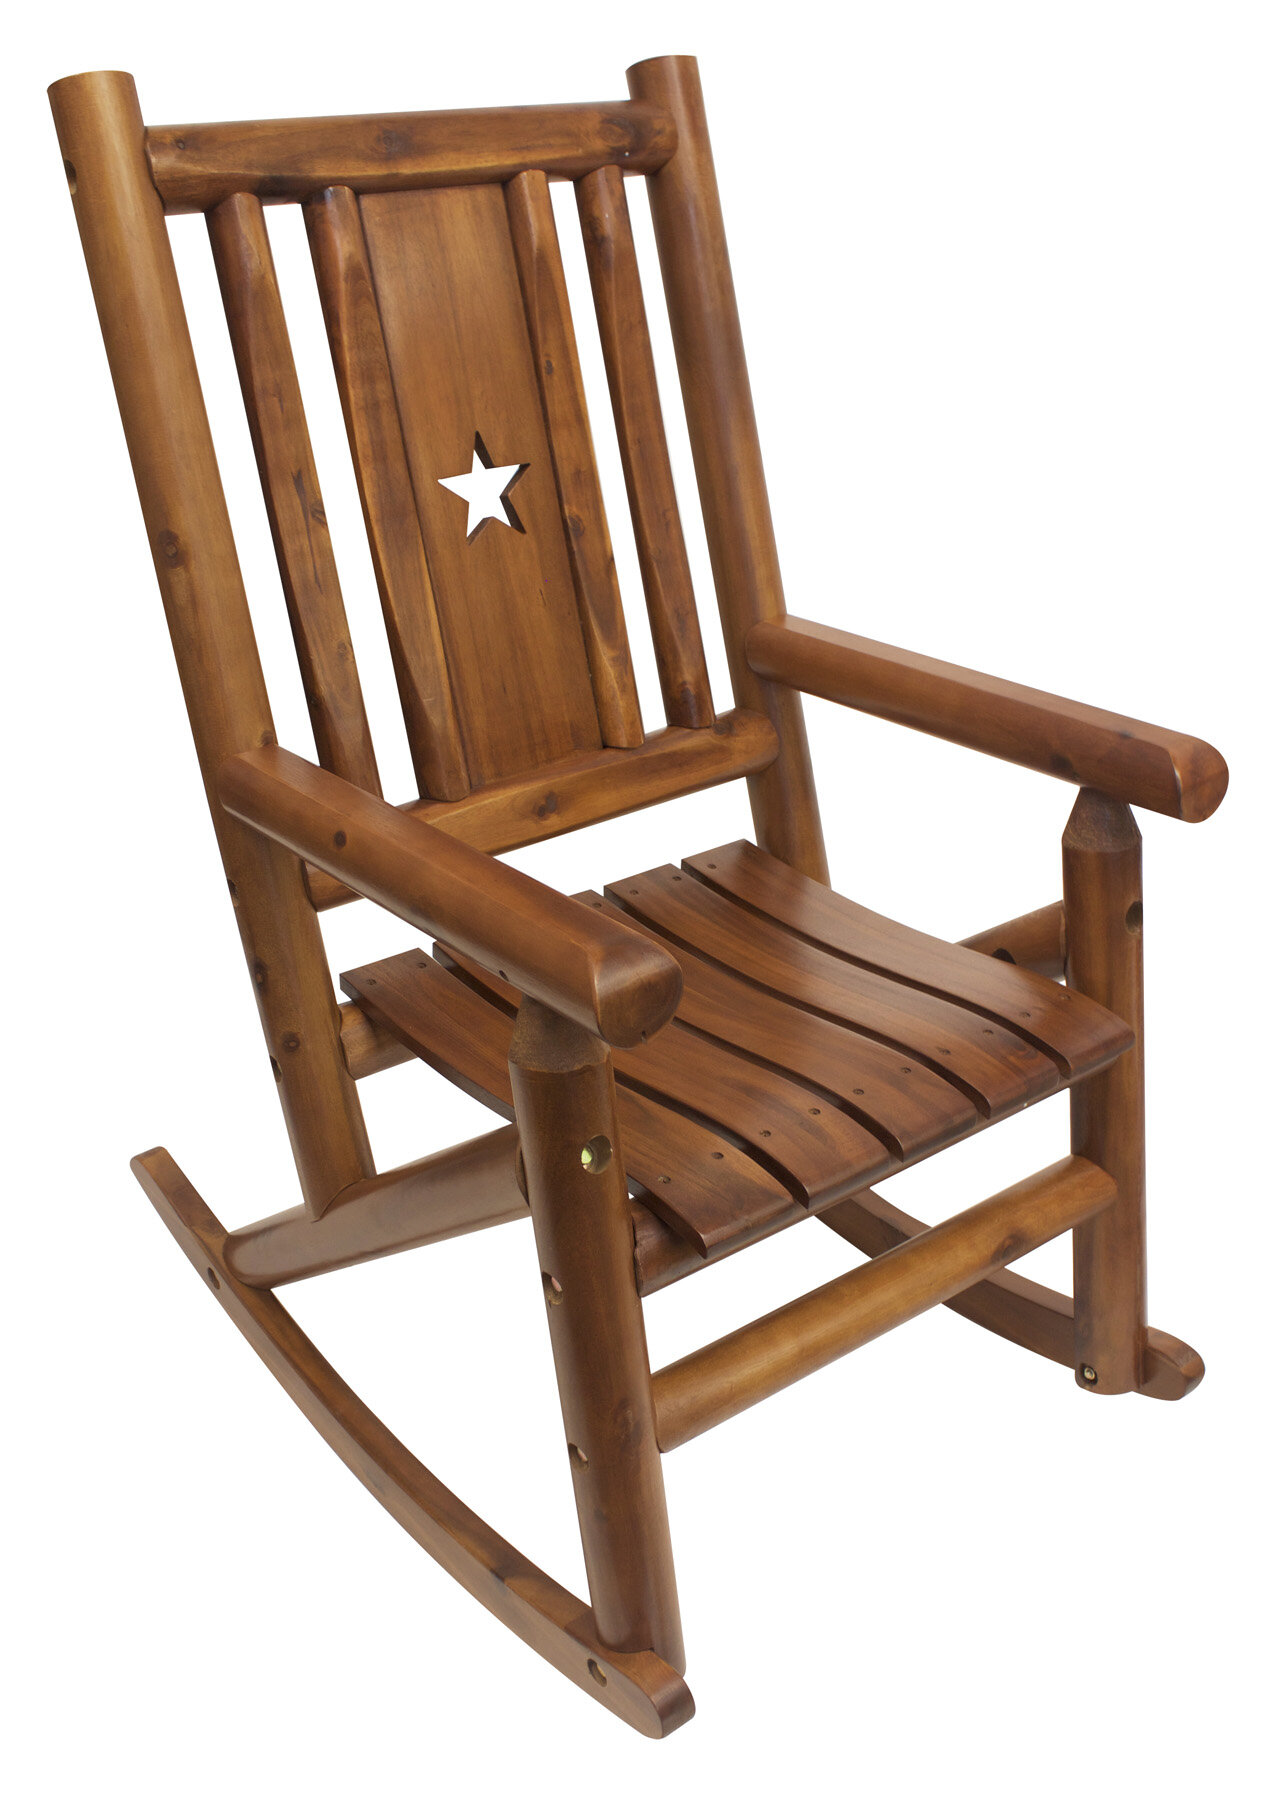 LeighCountry Amber Log Star Single Porch Rocking Chair | Wayfair